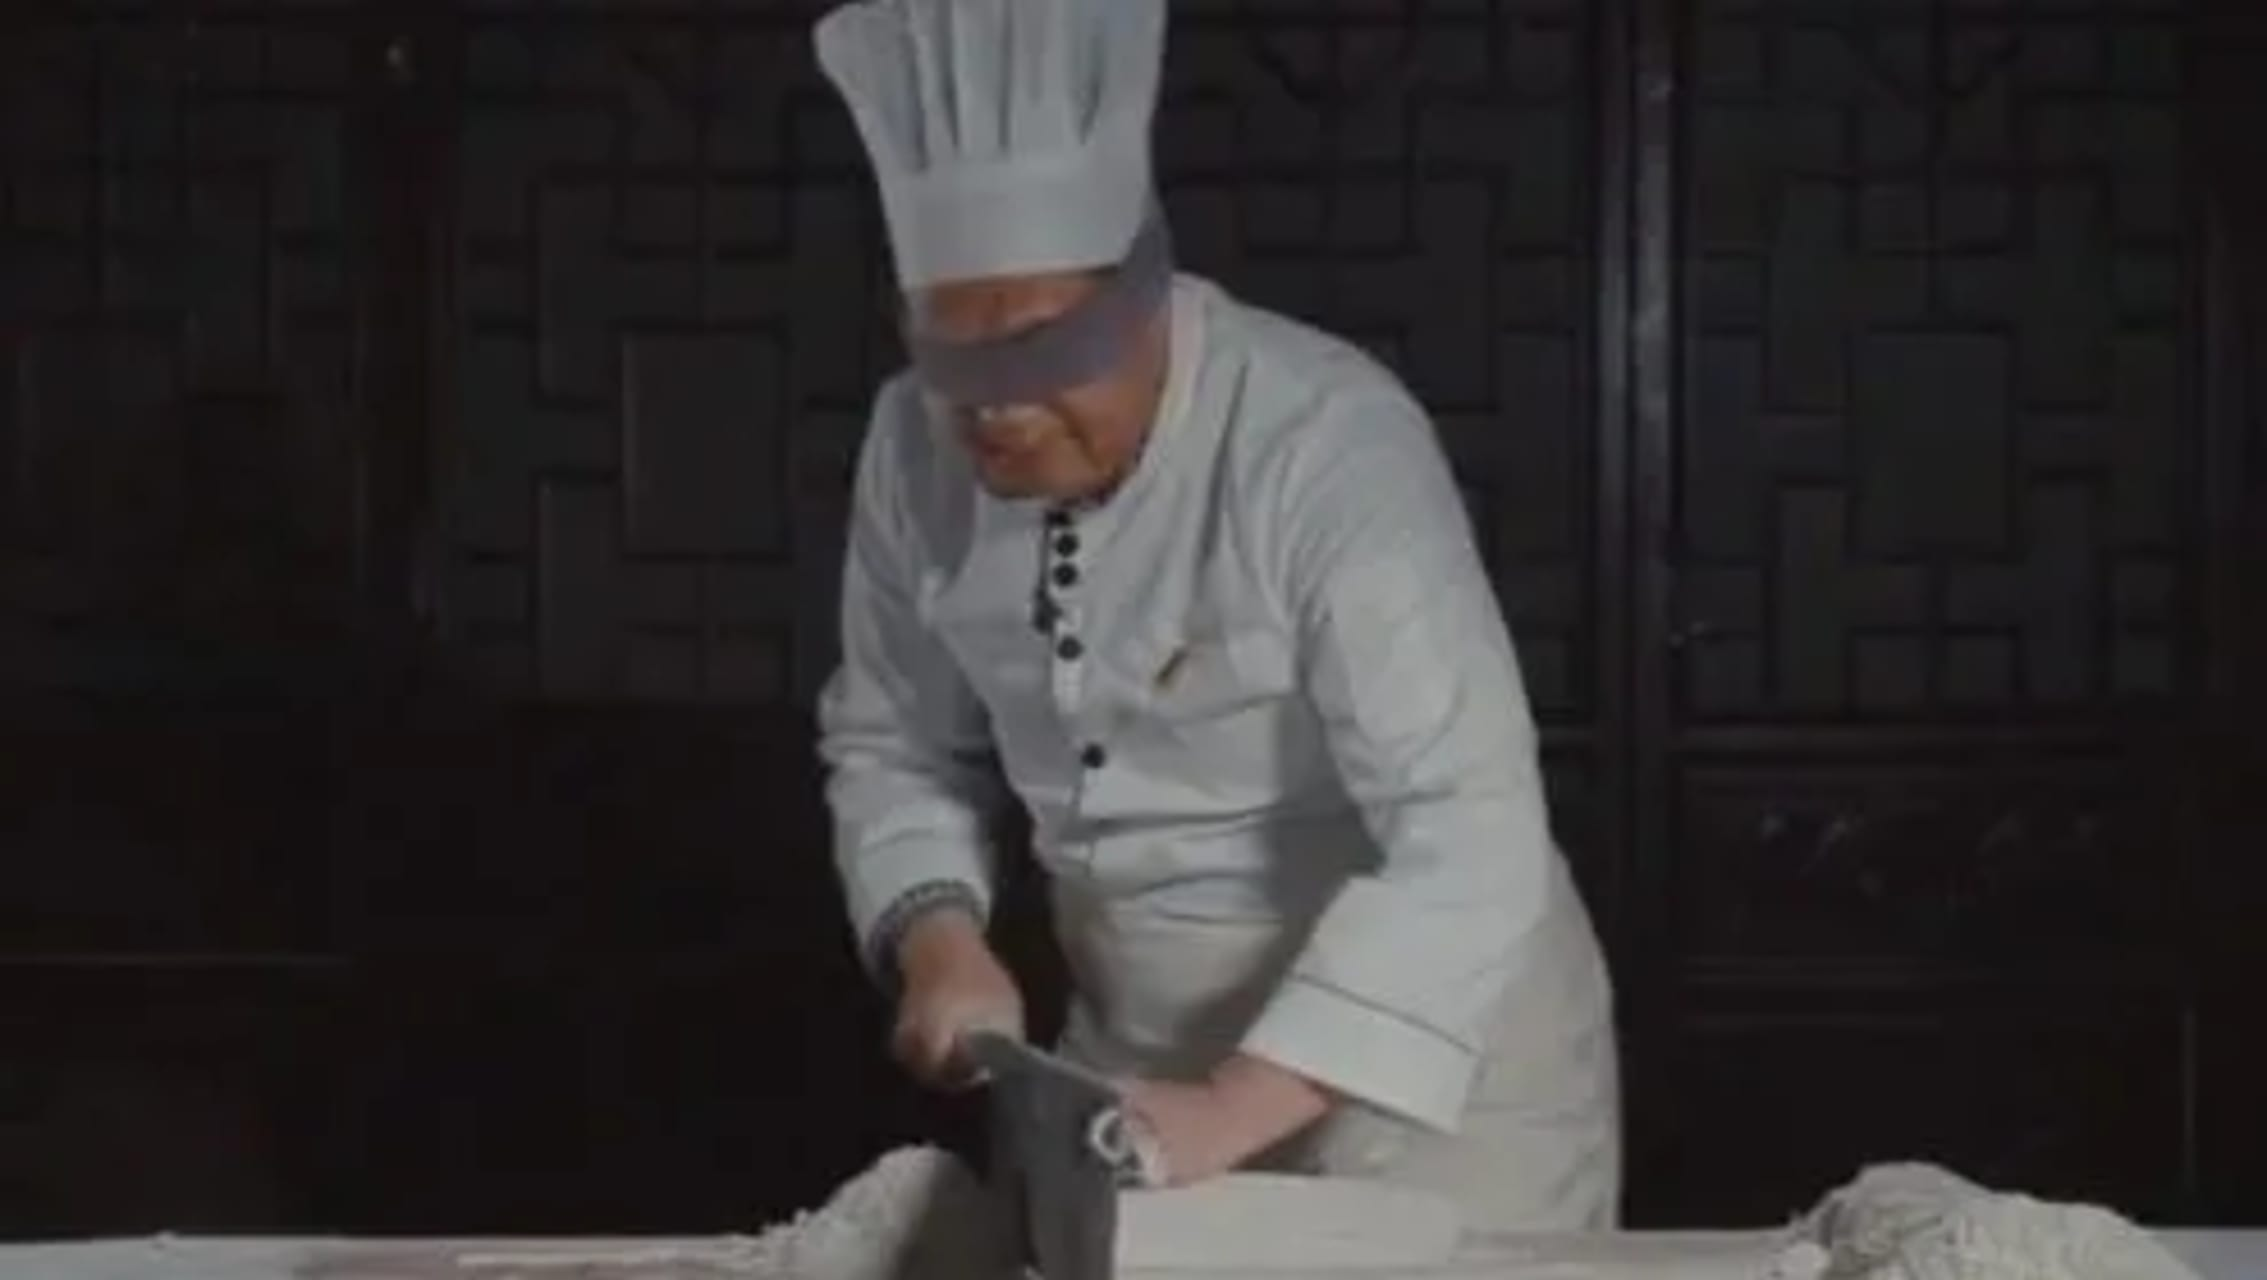 Chengdu - Dragon Boat Festival 2021: Cutting Noodles while Blindfolded with Egg painting